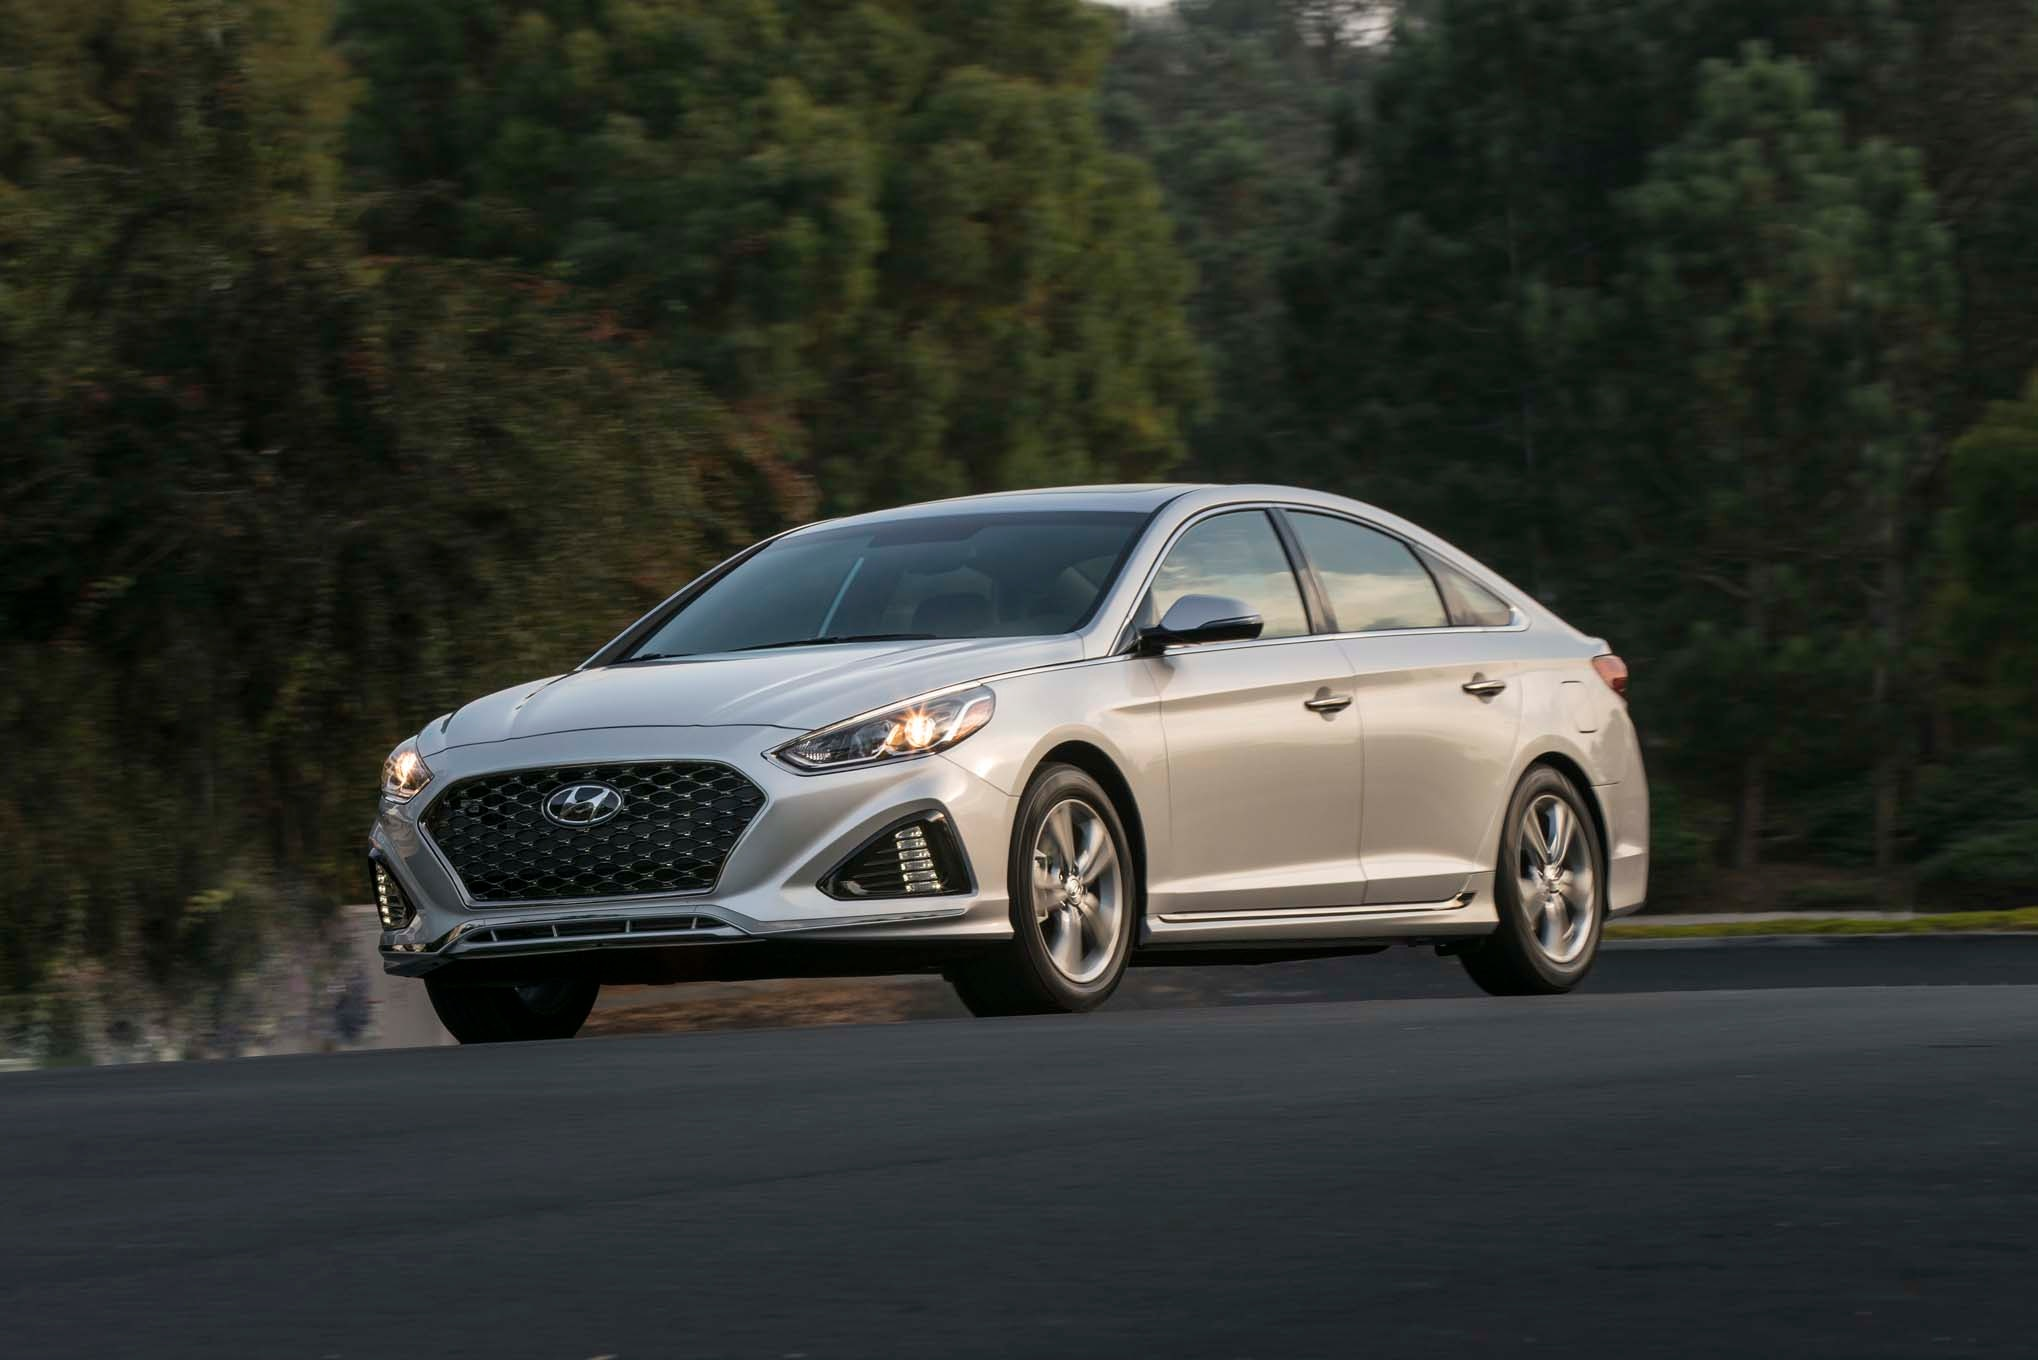 2018 Hyundai Sonata First Drive Review | Automobile Magazine